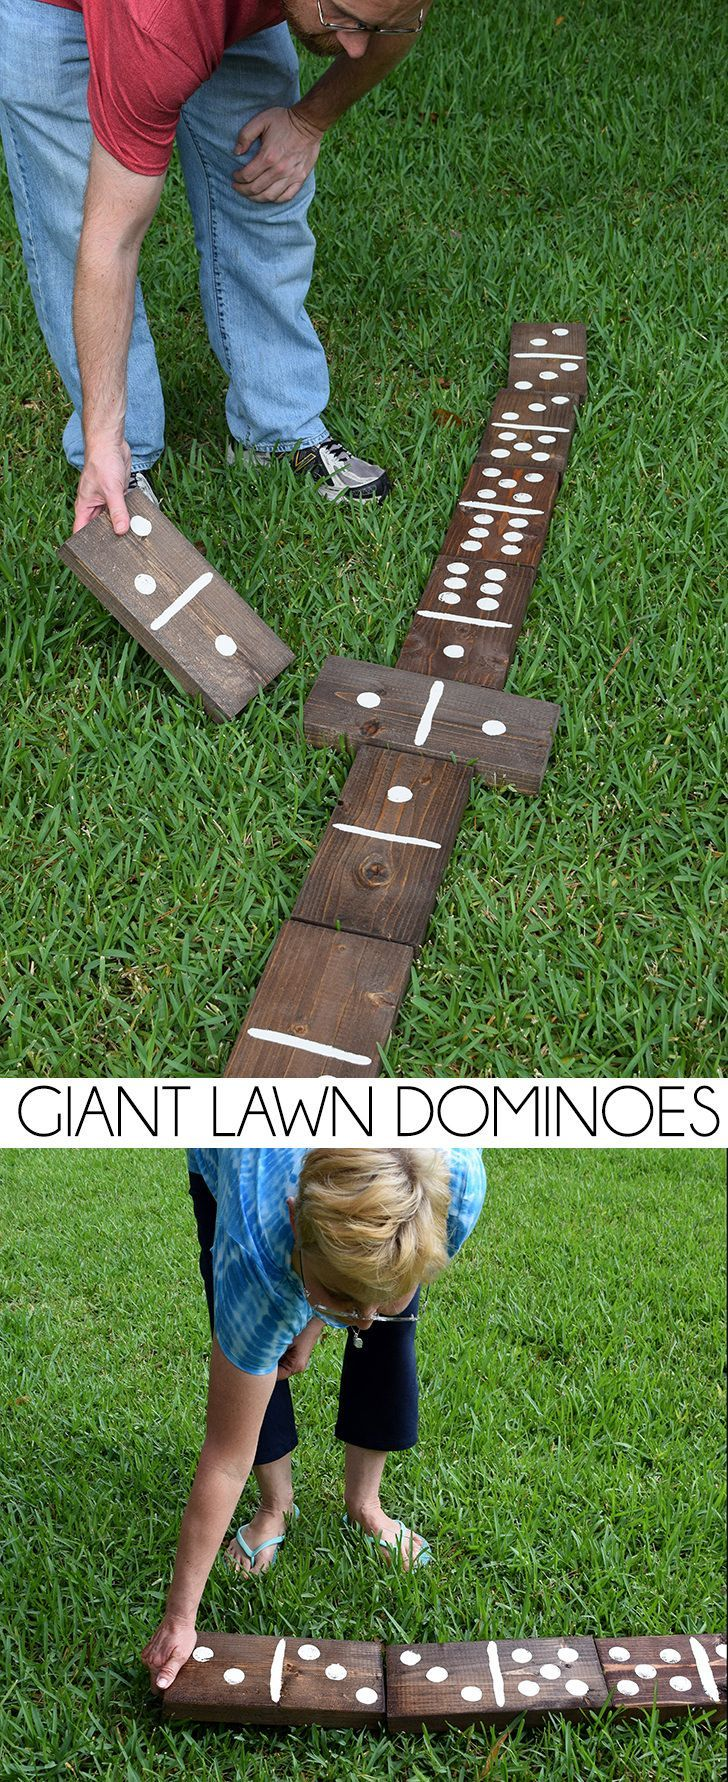 Make these Giant Lawn Dominoes for your next backyard party, plus really great ideas for fun DIY backyard party games to try.